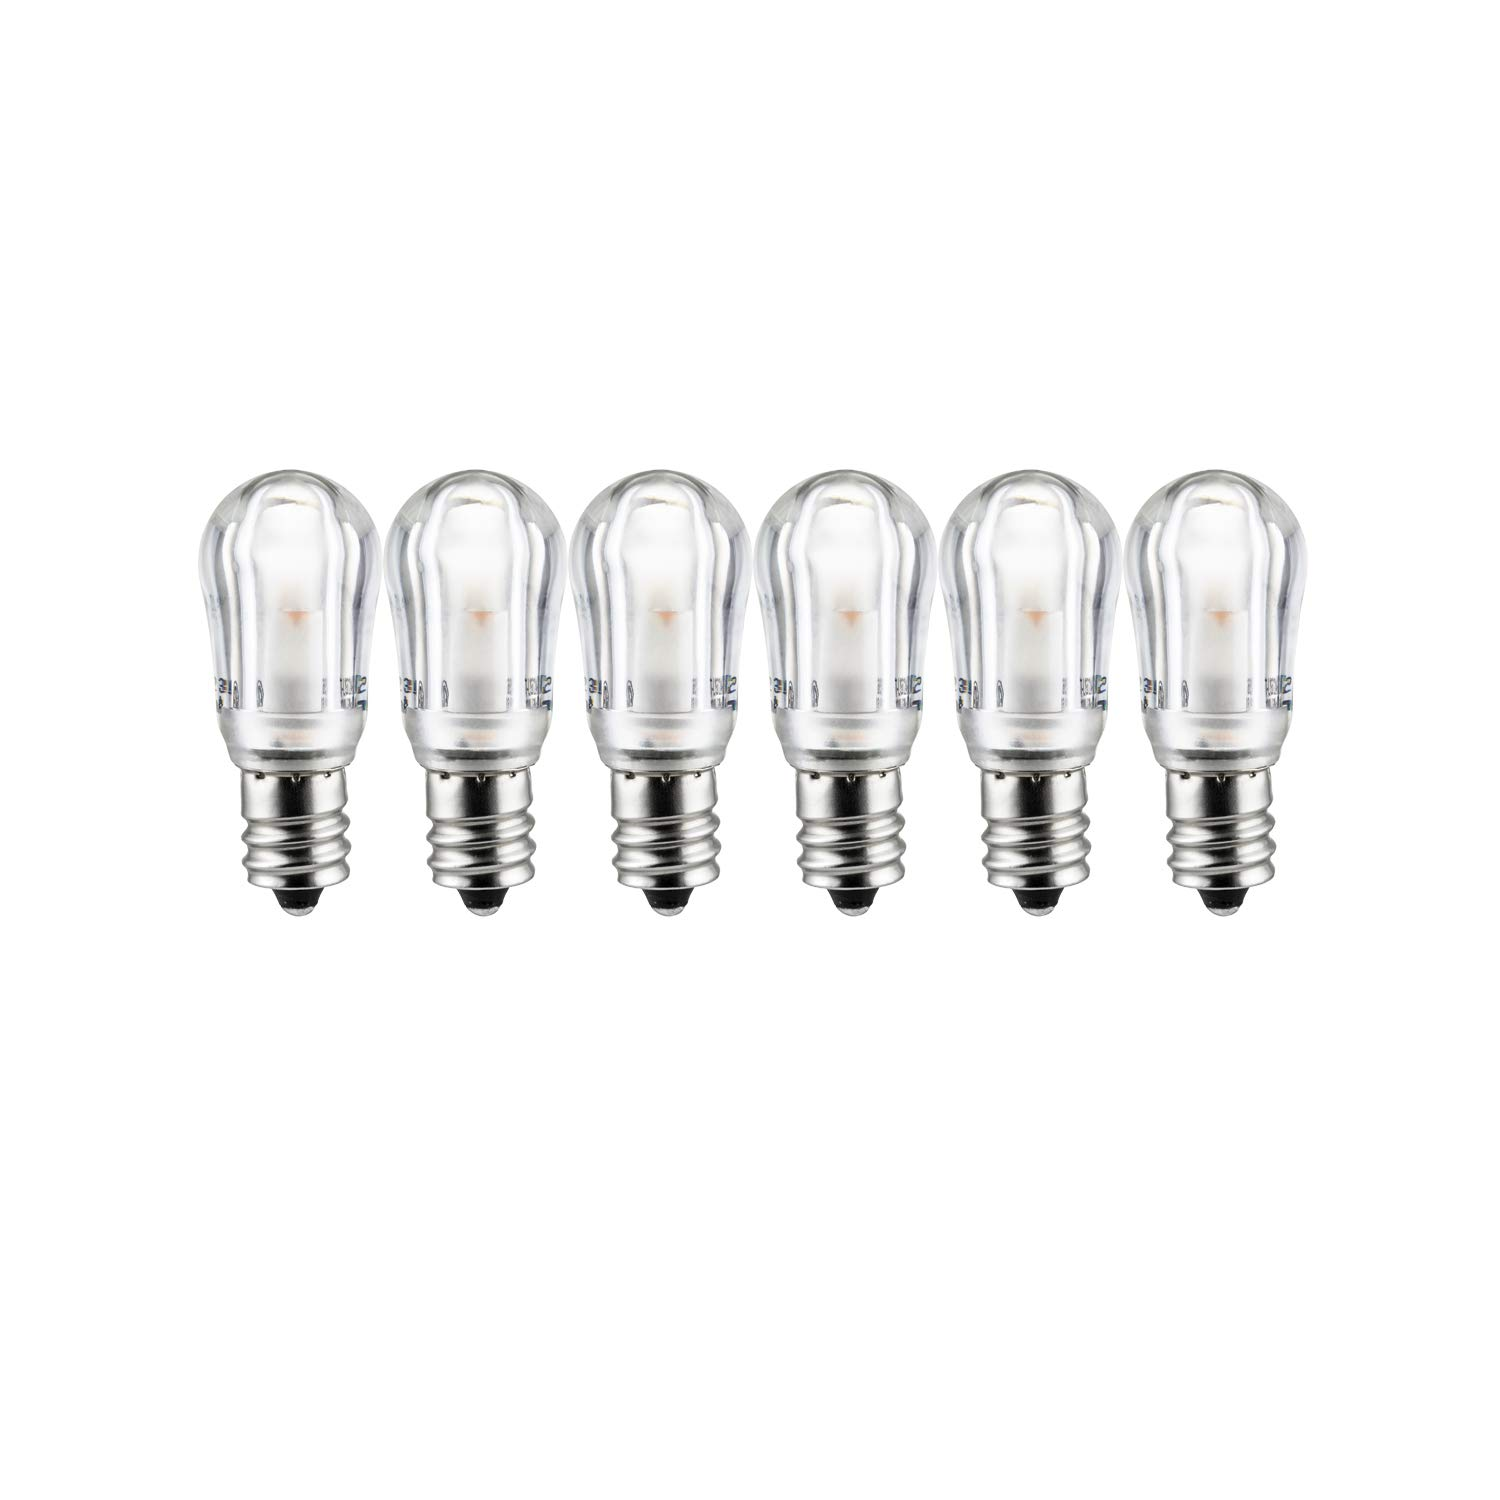 Sunlite 41069-SU LED Night Light Bulb S6 Indicator Lightbulb Non Dimmable, Chandelier E12 Base, 6 Pack, Warm White